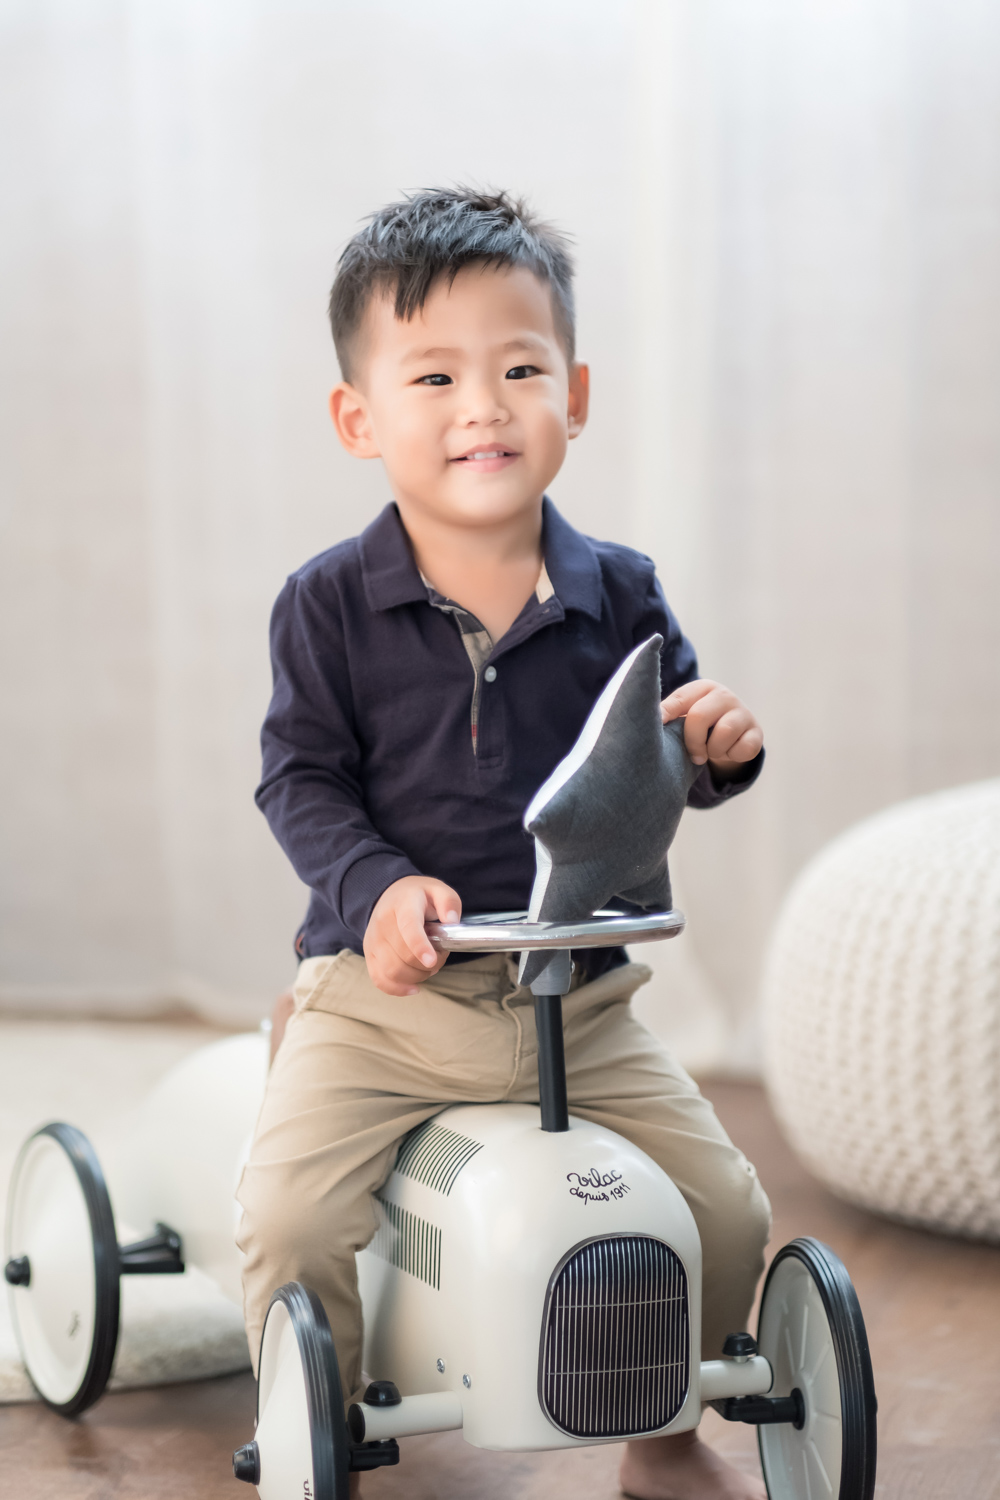 2-year-old Henry rides a retro bike in a Chicago photo studio.